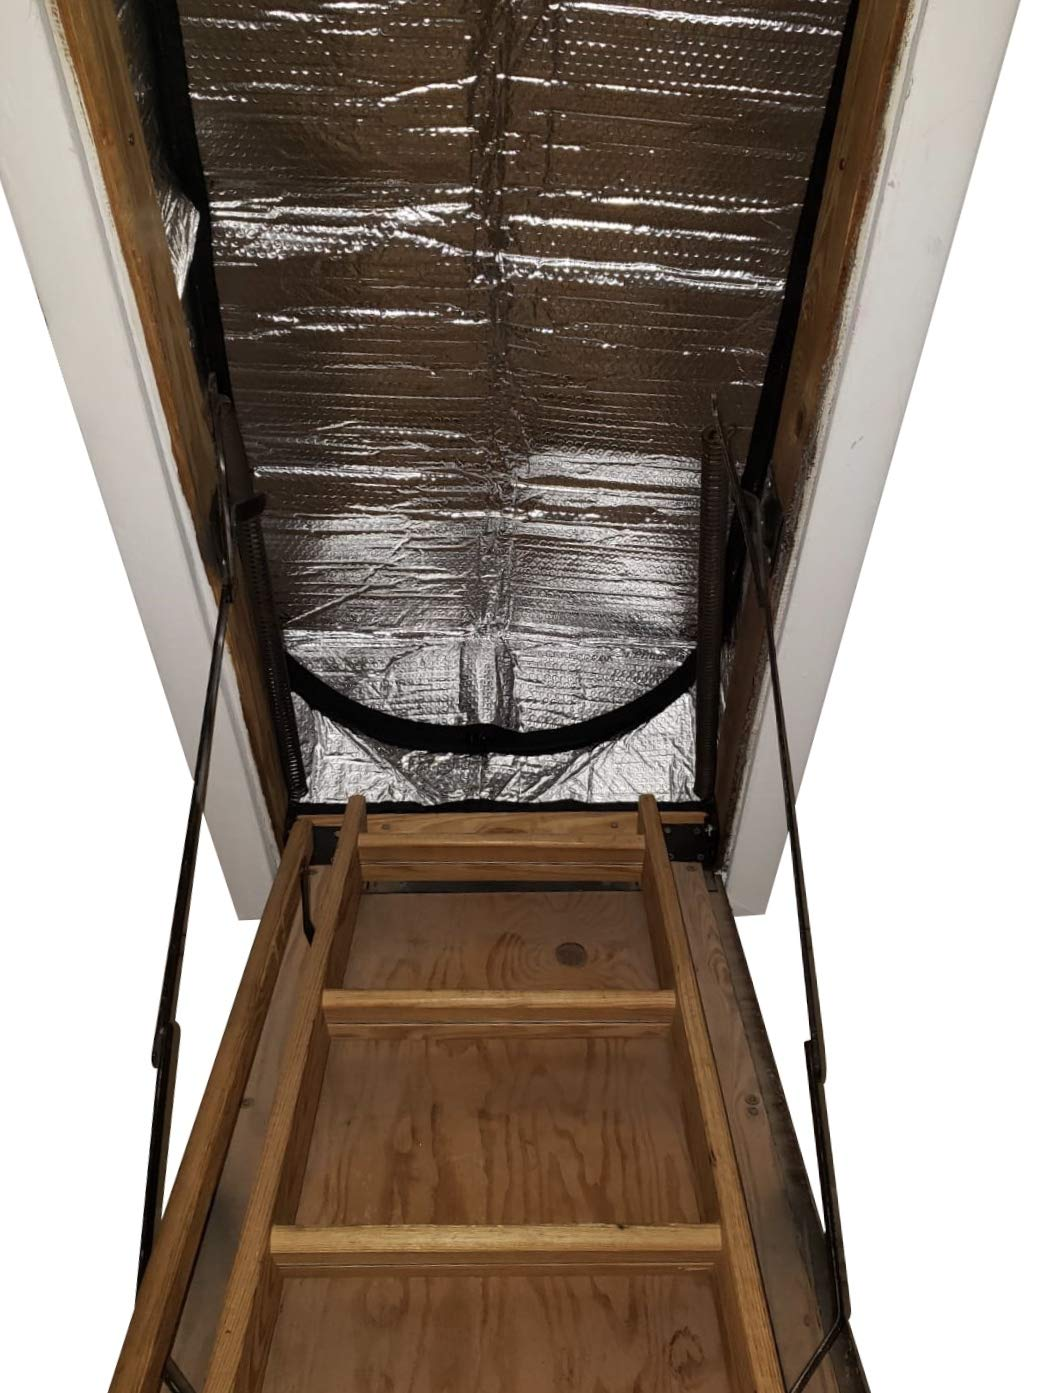 Attic Stairs Insulation Cover for Pull Down Stair 25'' x 54'' x 11''- Extra Thick Fire Proof Attic Cover Stairway Insulator with Easy Installation, Low-dip Entrance and Tear Resistant Zipper by Miloo